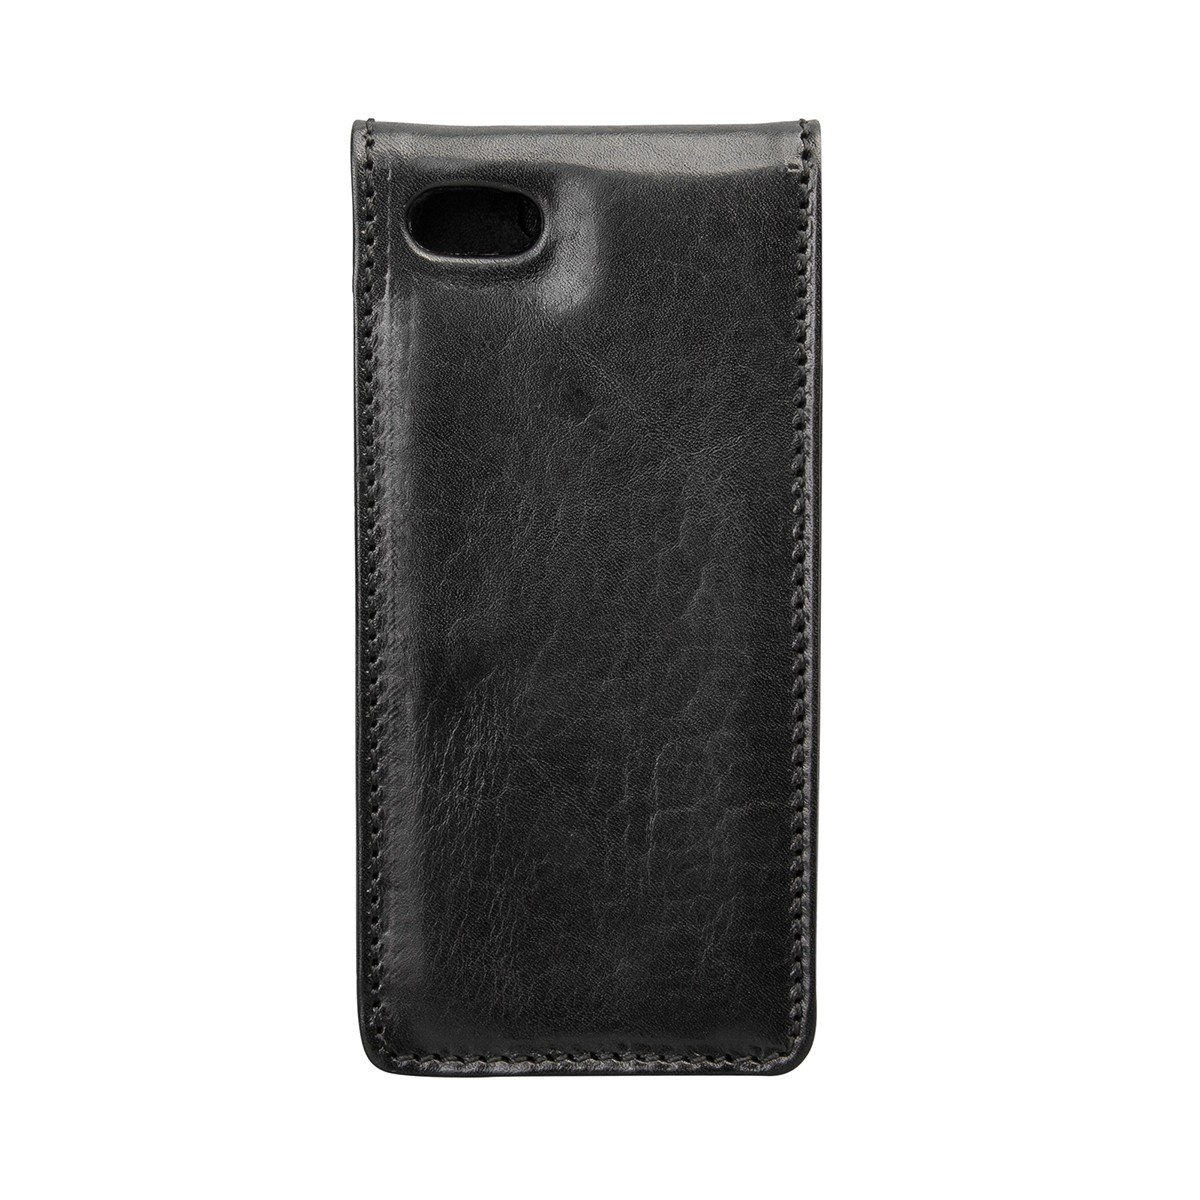 Maxwell Scott Personalized Iphone 5/5s Black Leather Flip Case for Cell (Renato) by Maxwell Scott Bags (Image #3)